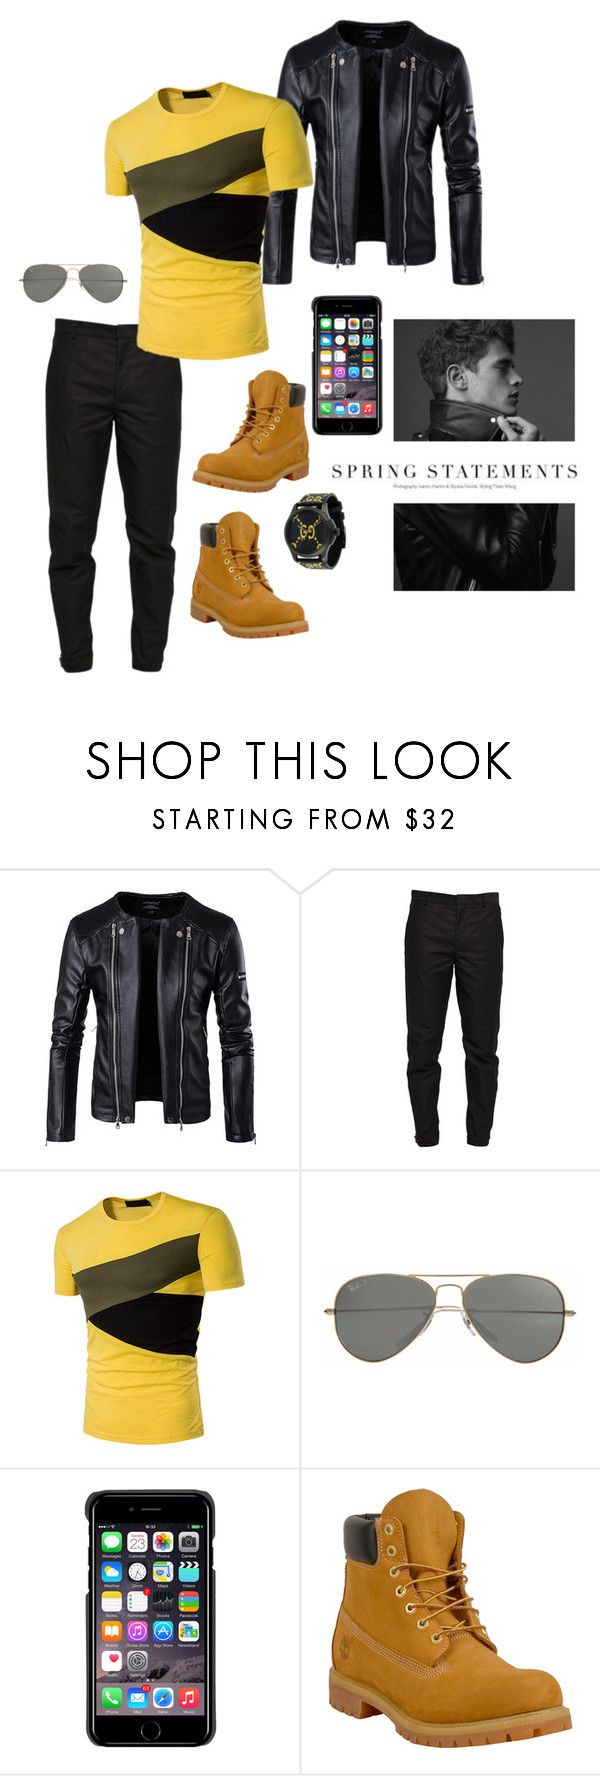 """""""Simple yet Stylish for Men"""" by missamandapmoss ❤ liked on Polyvore featuring Maison Margiela, Parasol, County Of Milan, Timberland, Folio, Gucci, men's fashion and menswear"""